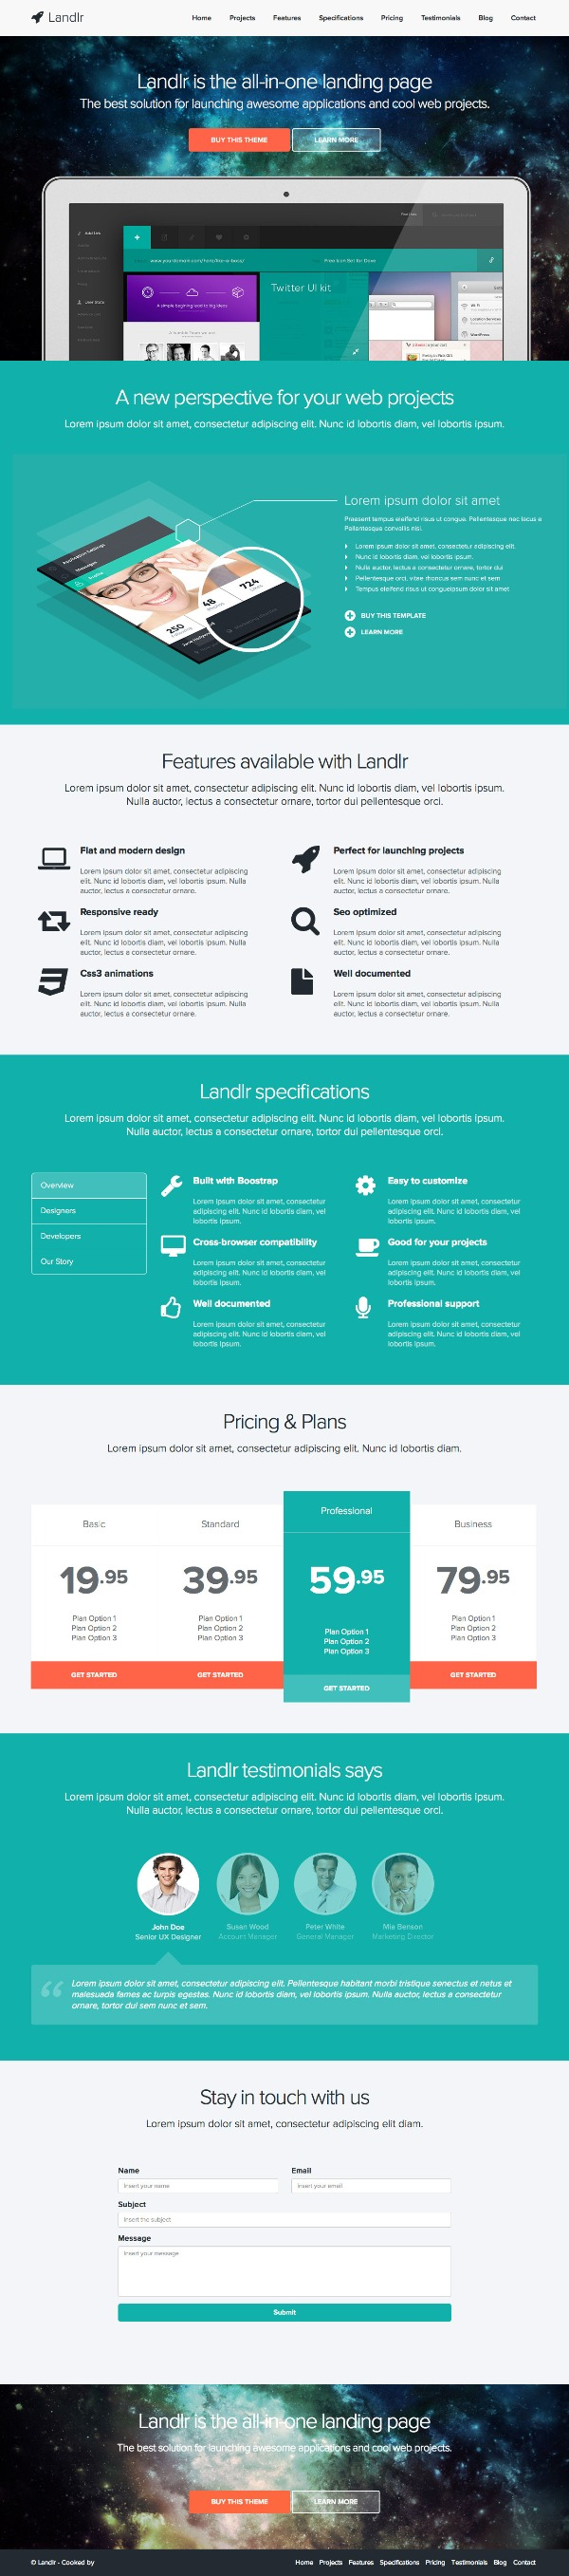 Landlr – The All-in-One WordPress Landing Page